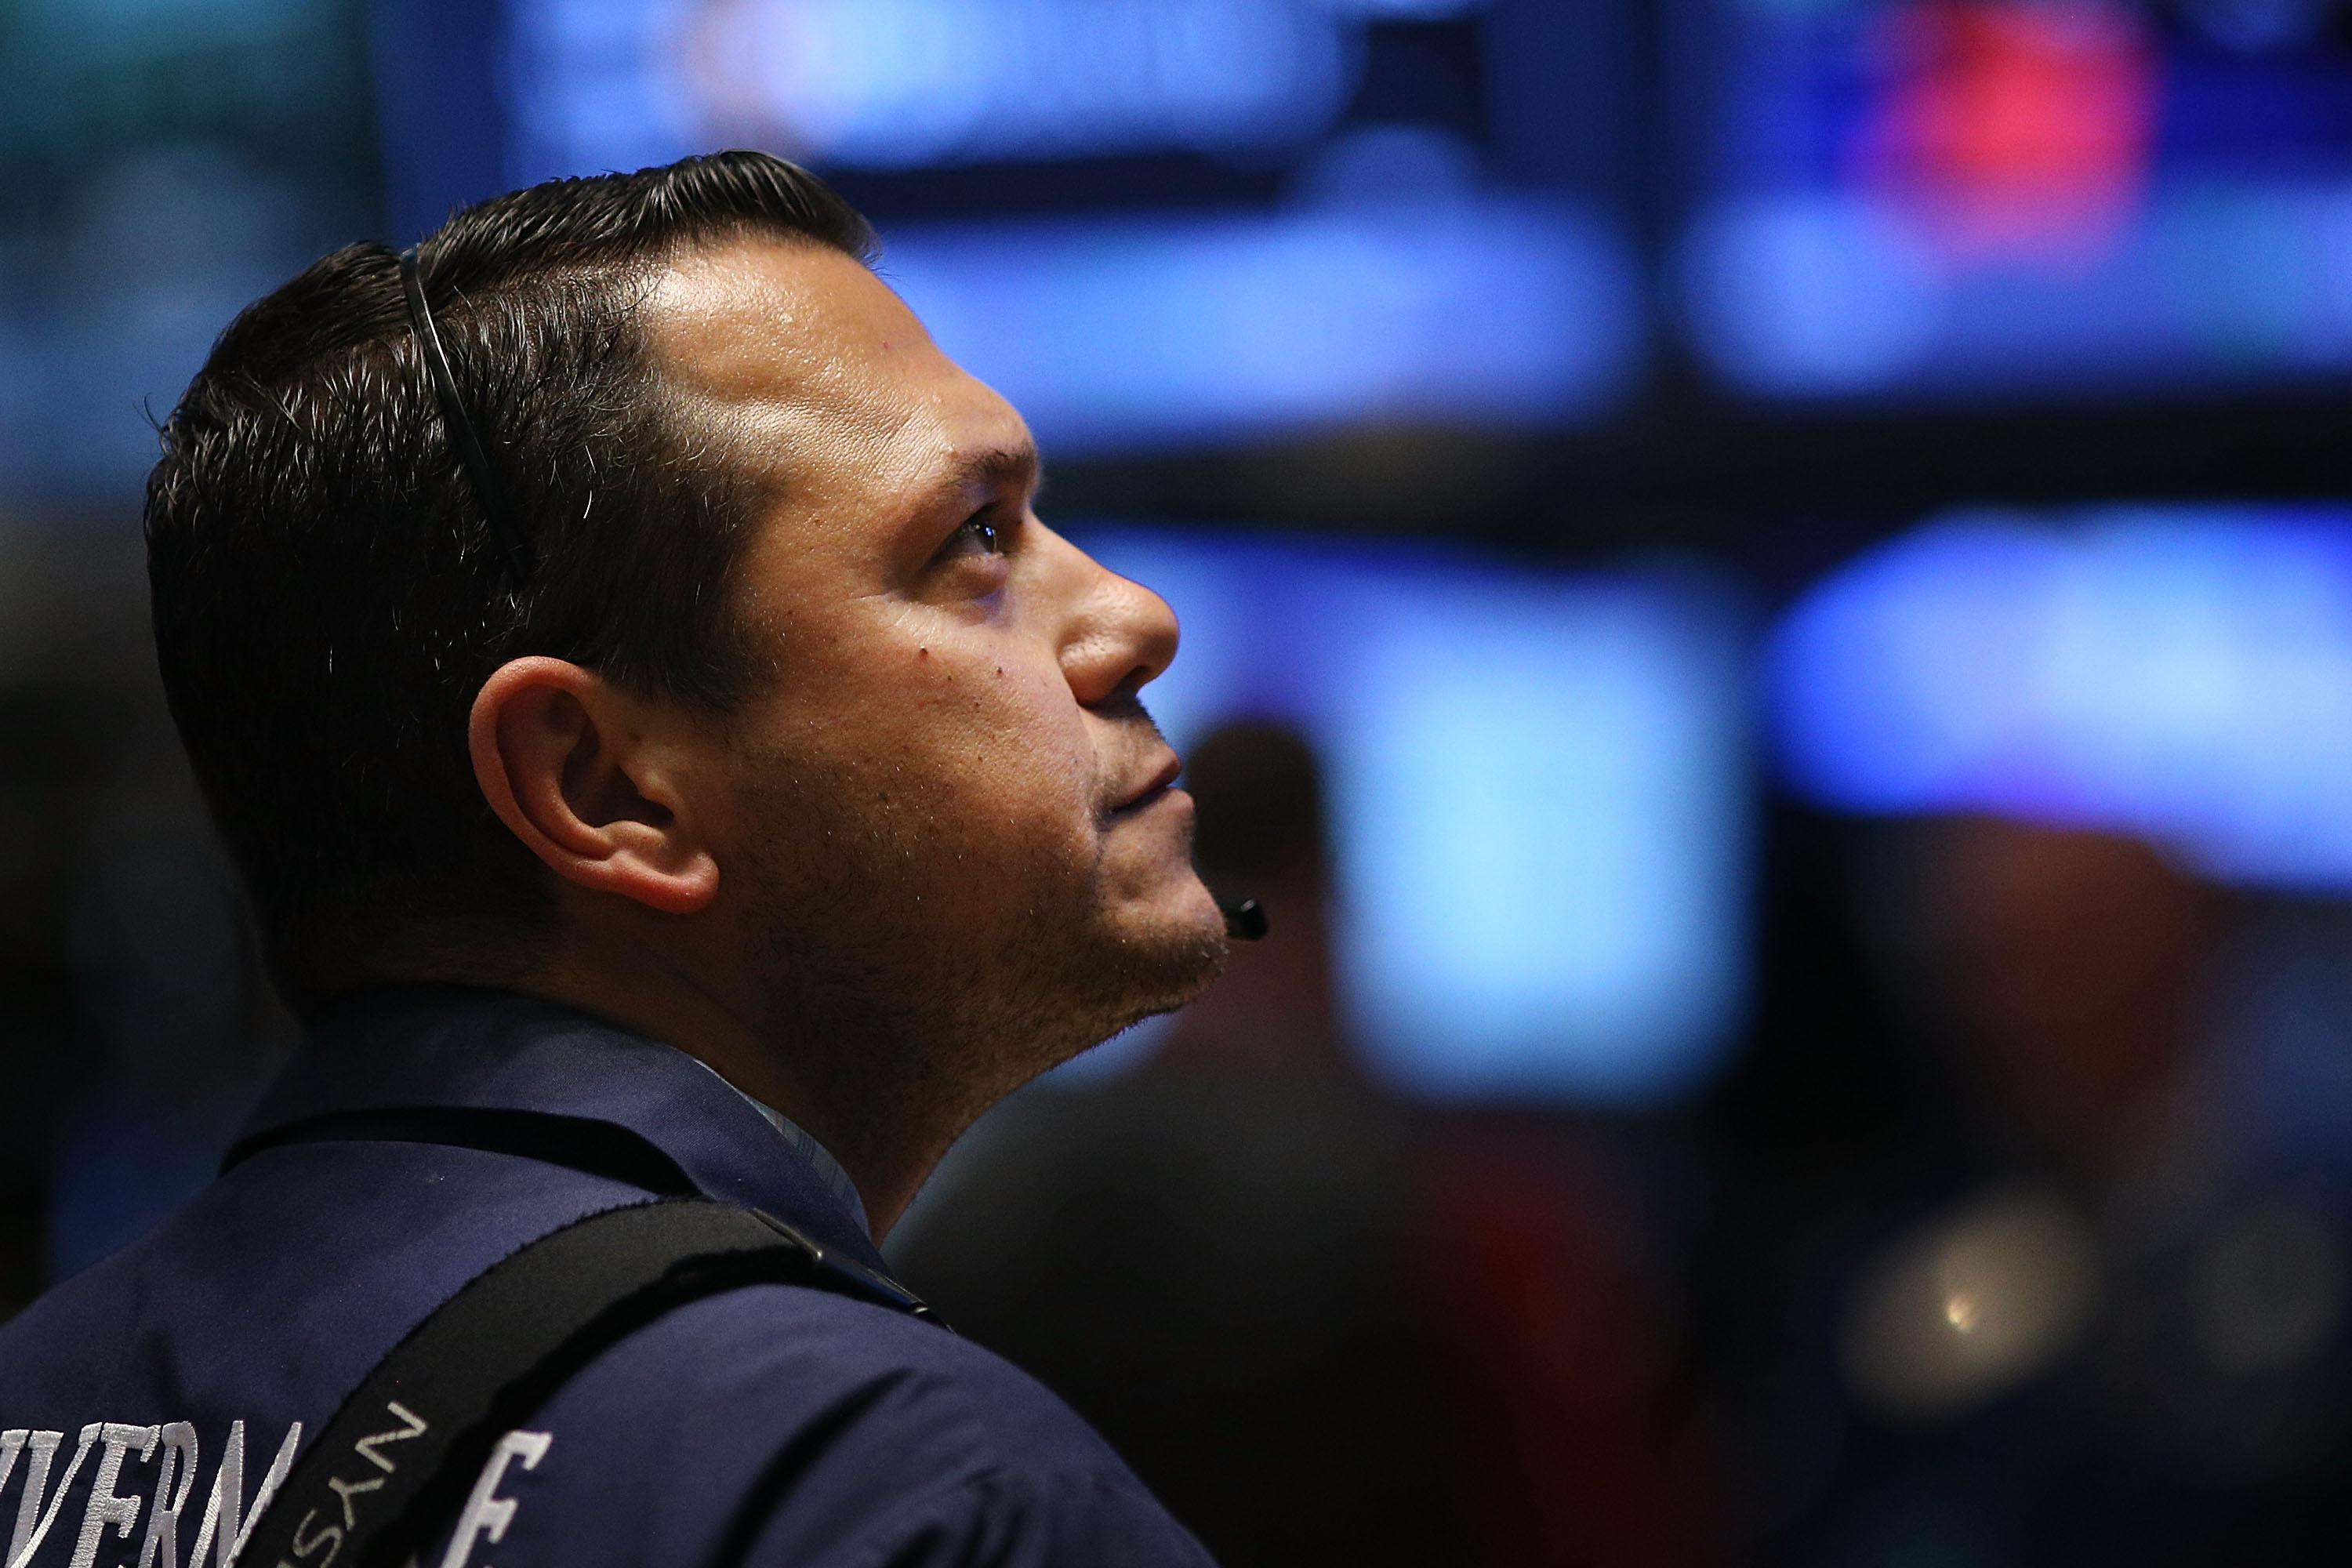 A trader works on the floor of the New York Stock Exchange (NYSE) on Oct. 21, 2014 in New York City.